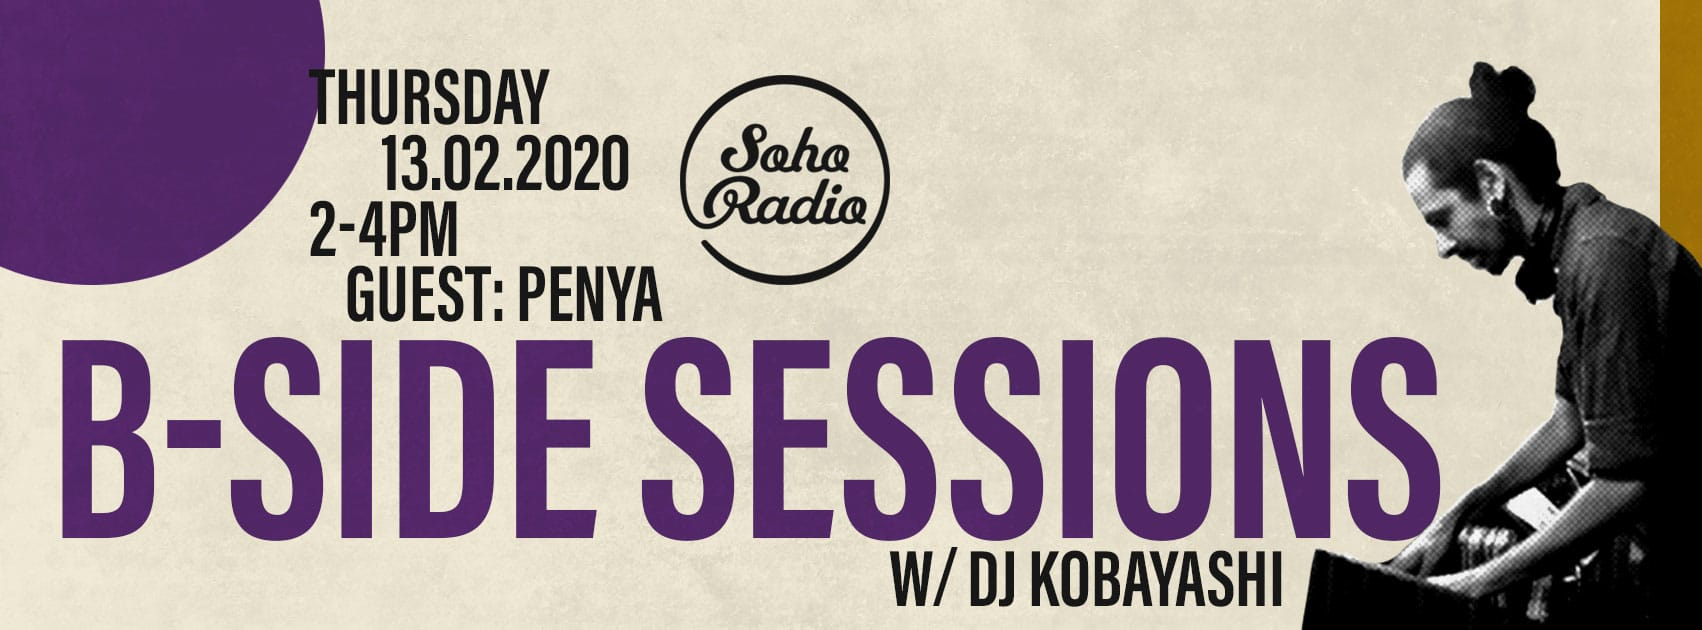 Soho-Radio-penya-February